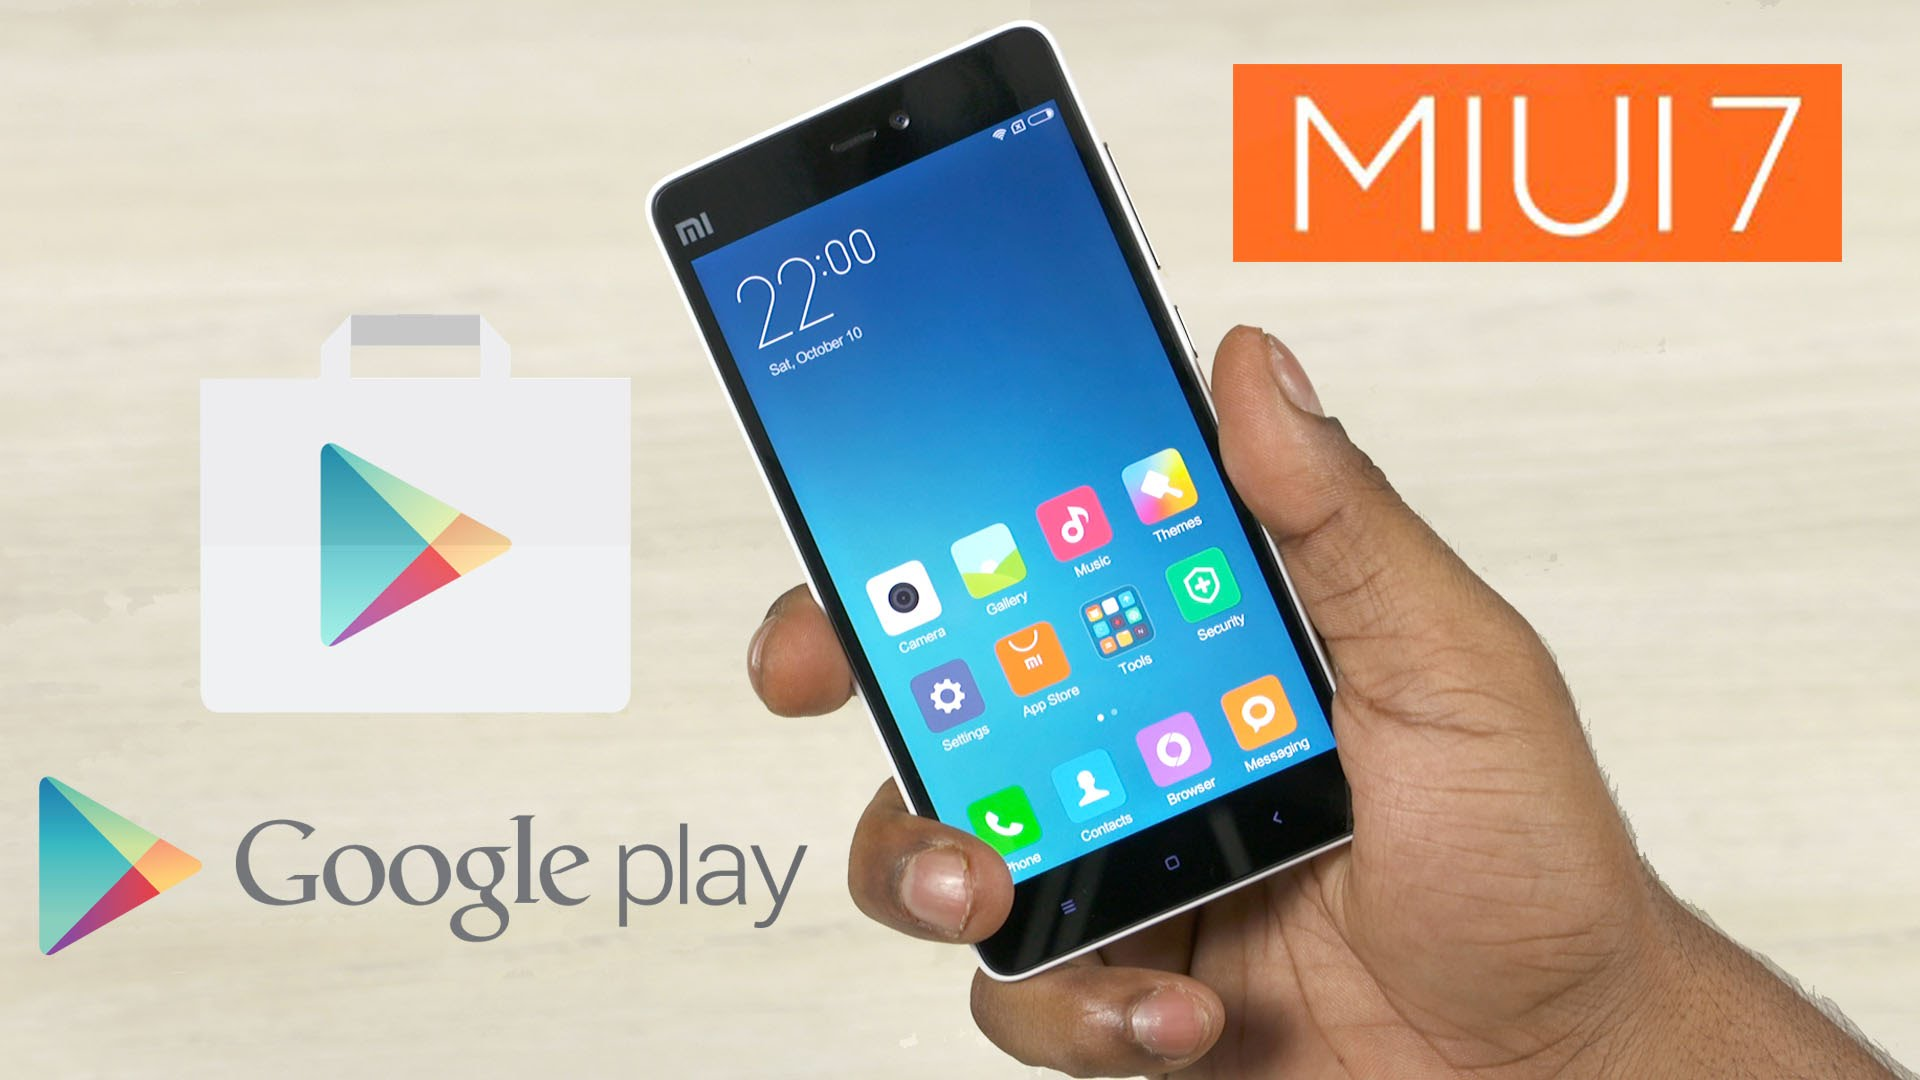 How to Install Google Play Store on MIUI Without Root